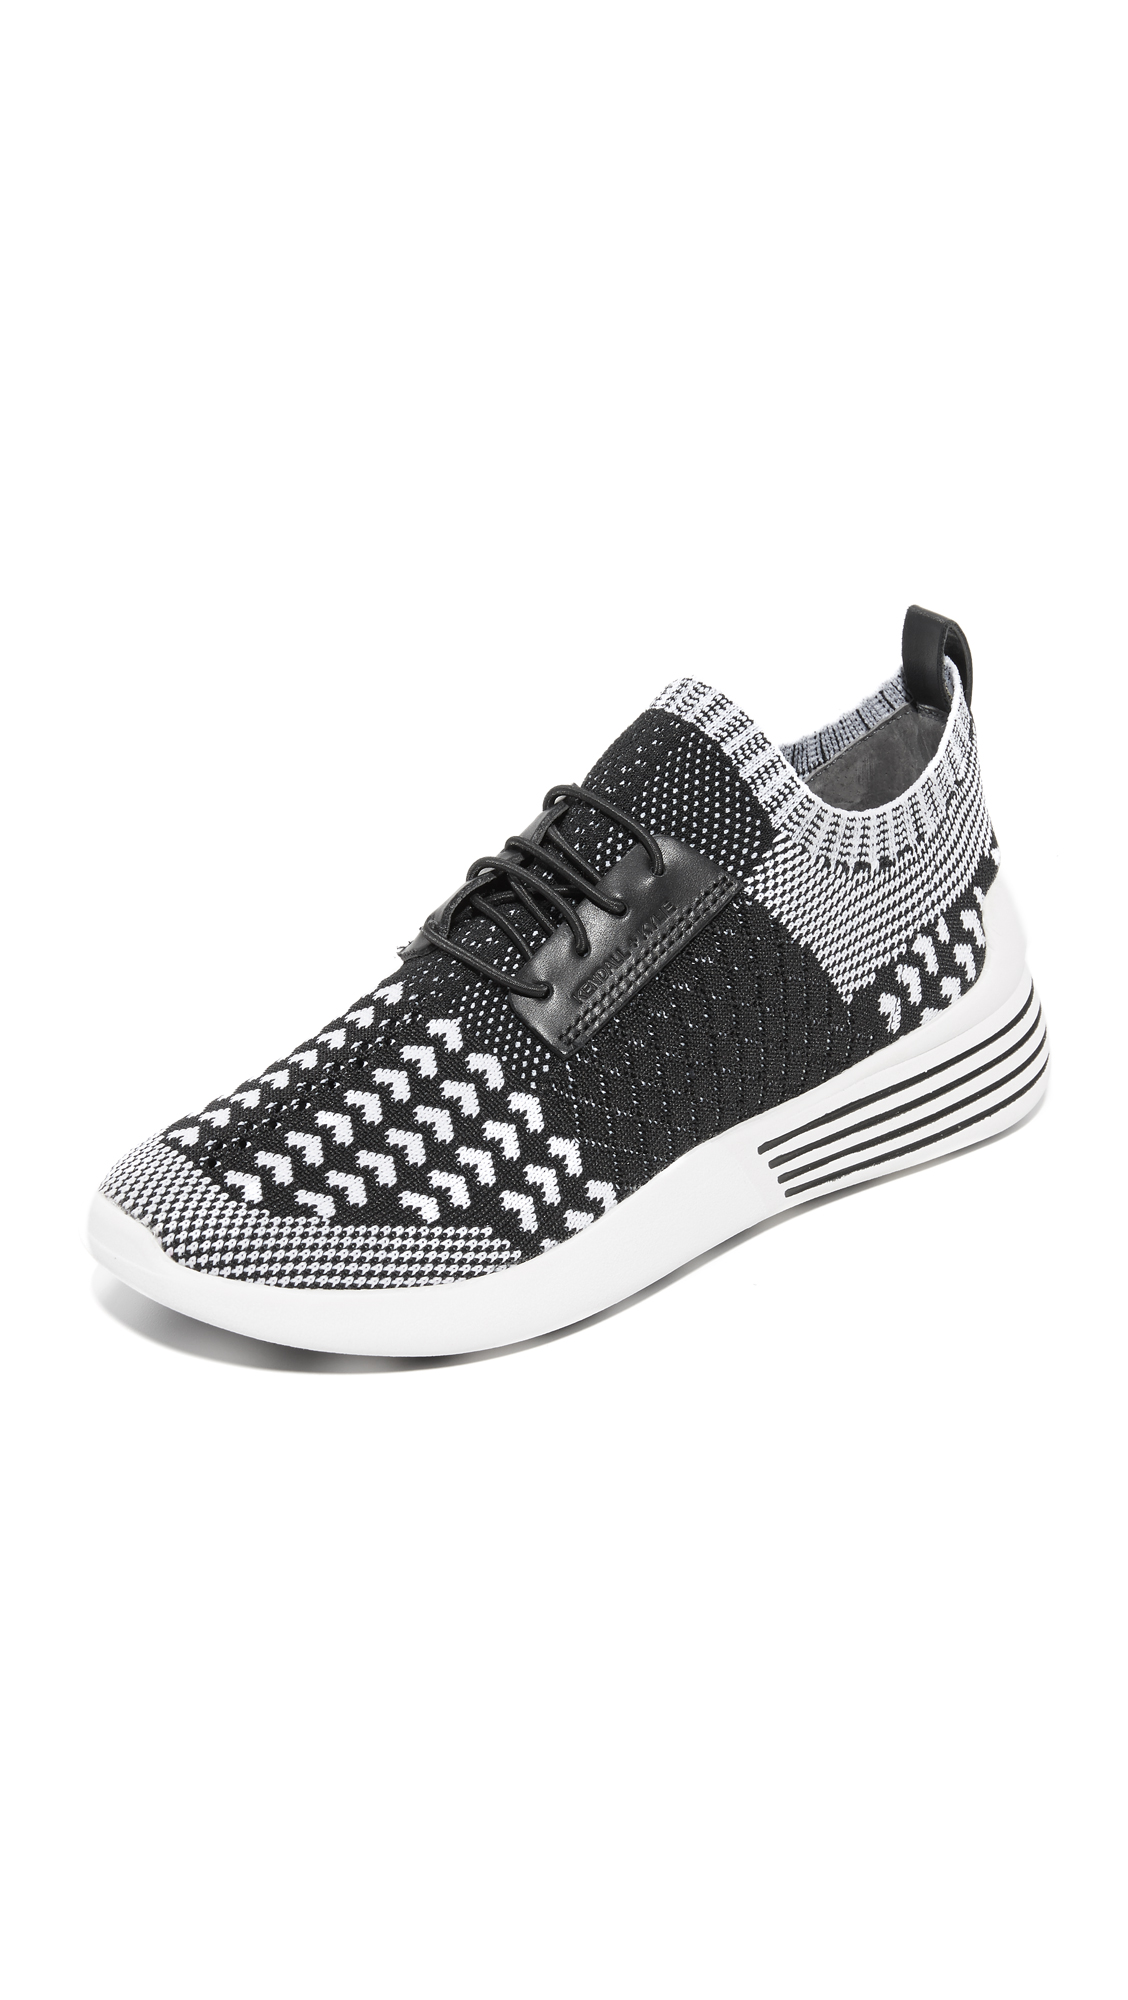 Photo of Kendall + Kylie Brandy Knit Sneakers Black Multi - KENDALL + KYLIE online